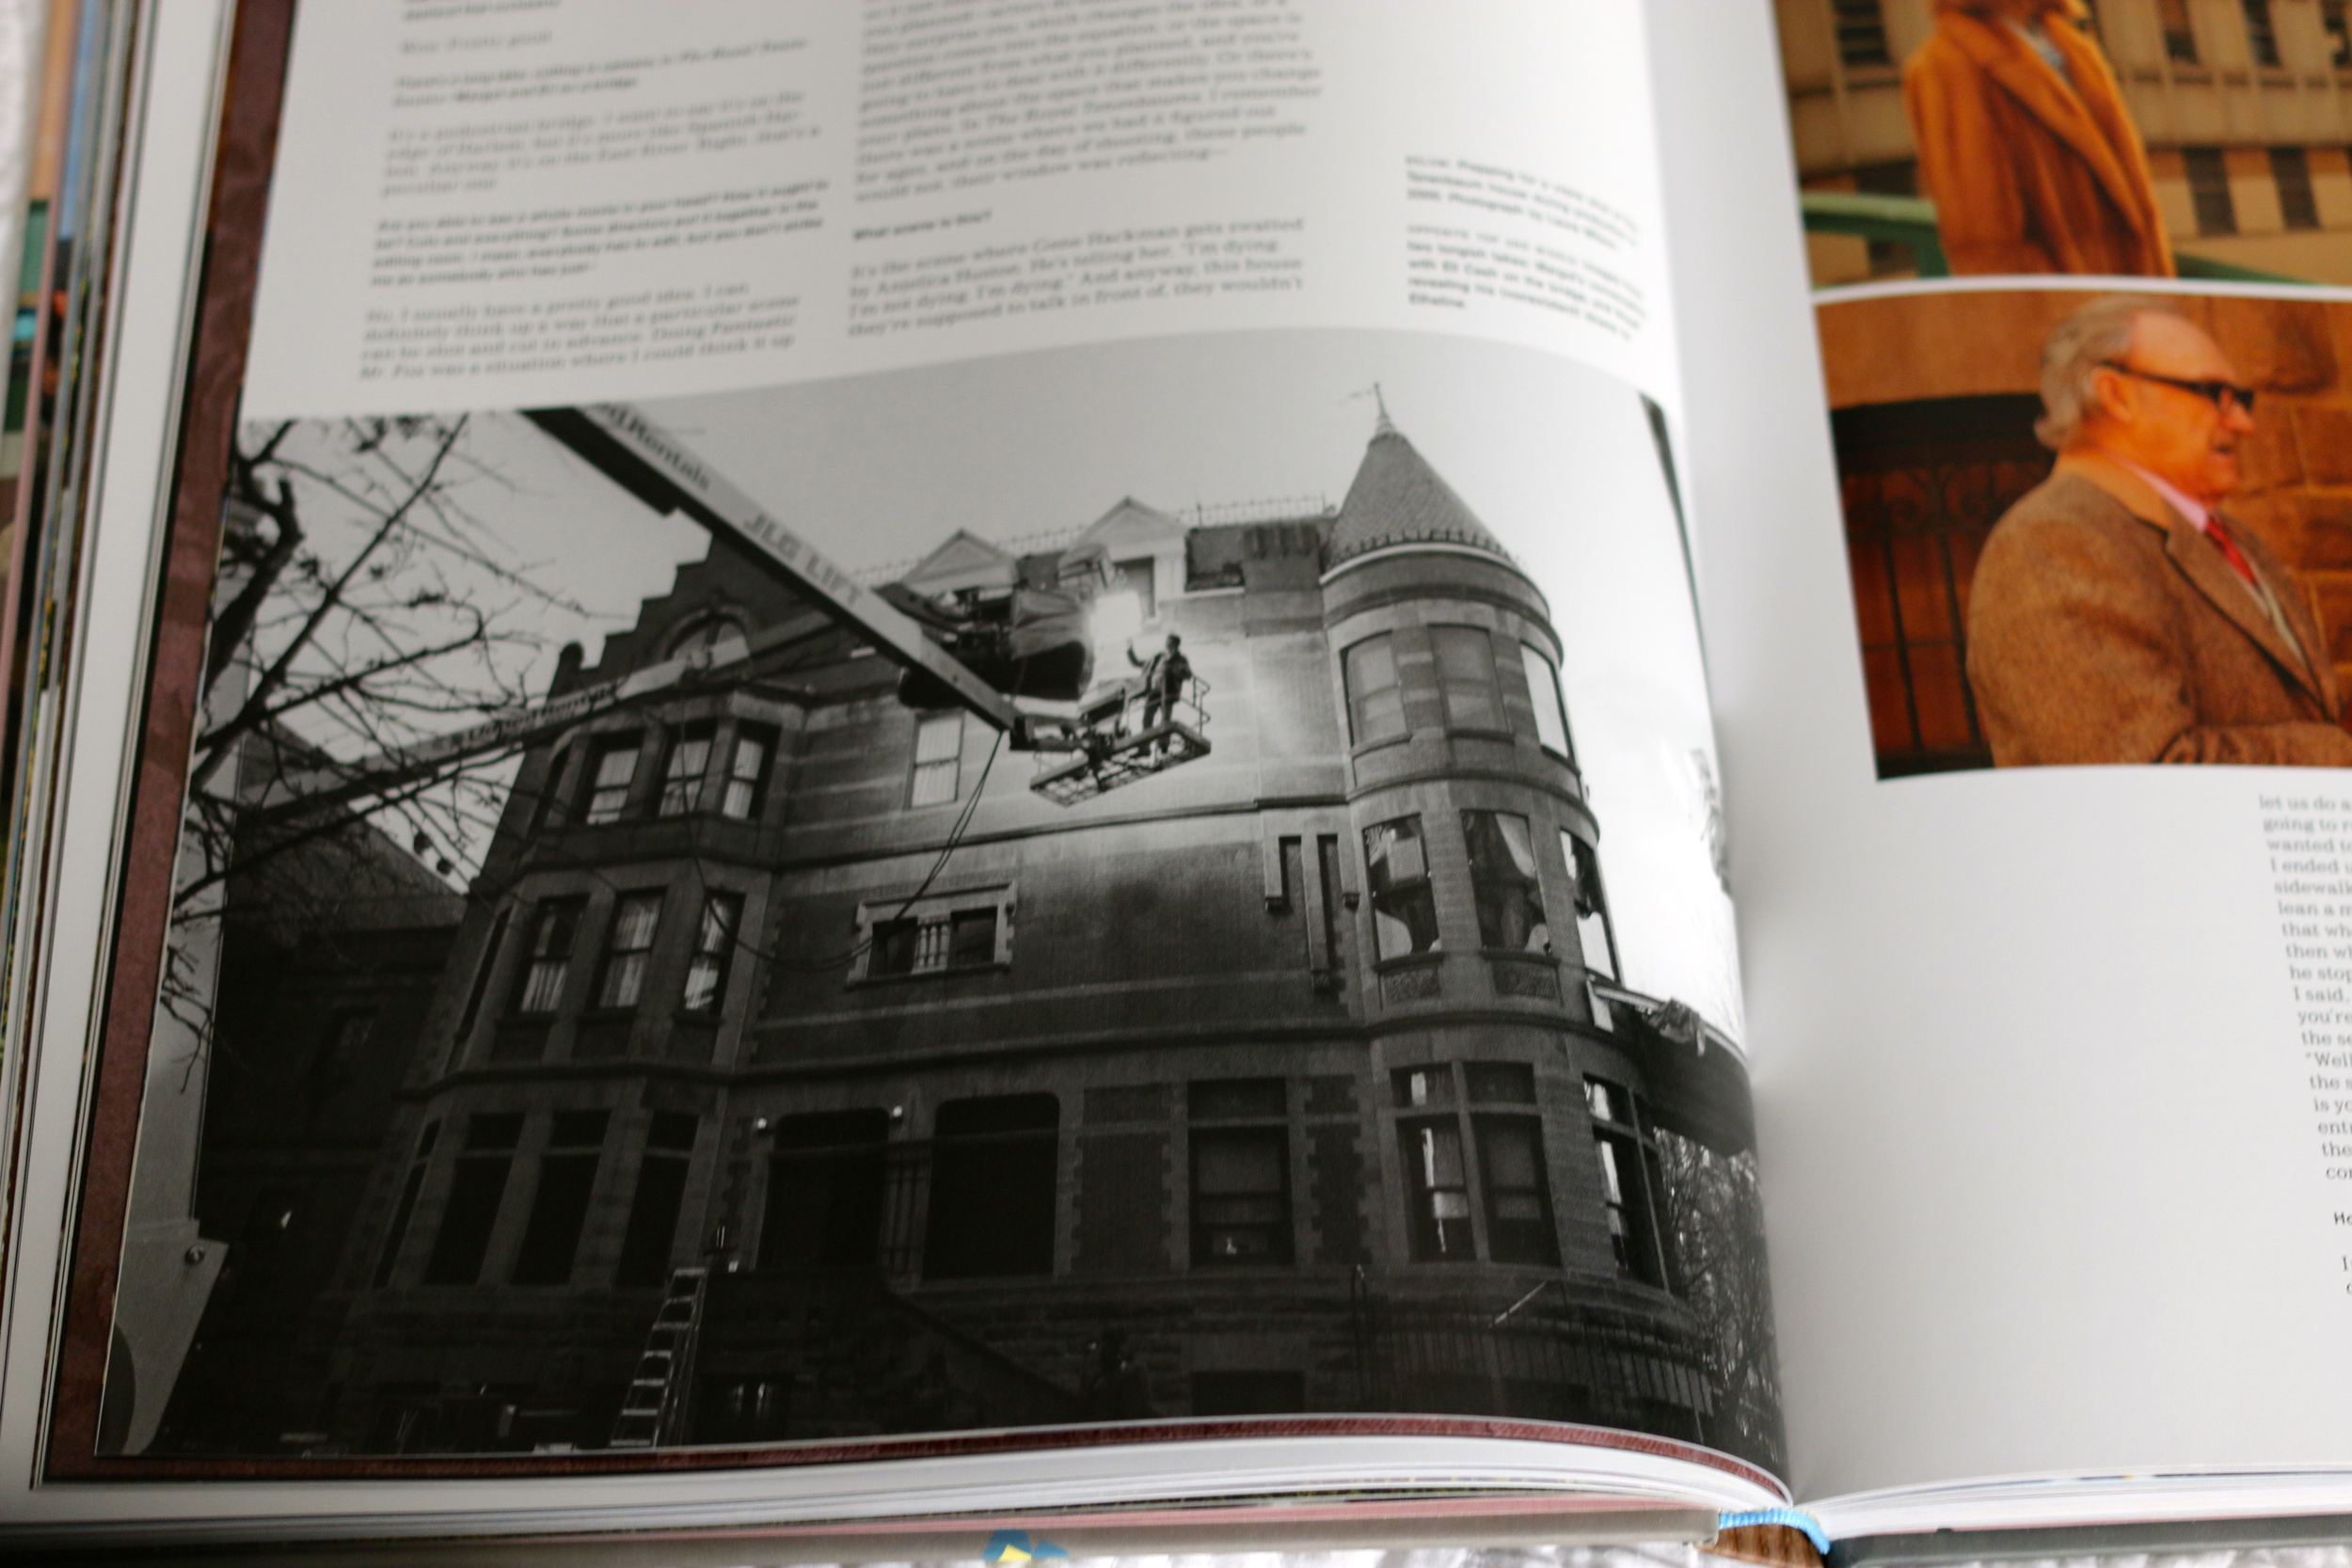 The Wes Anderson Collection Archer Ave Essay on ourcitylights